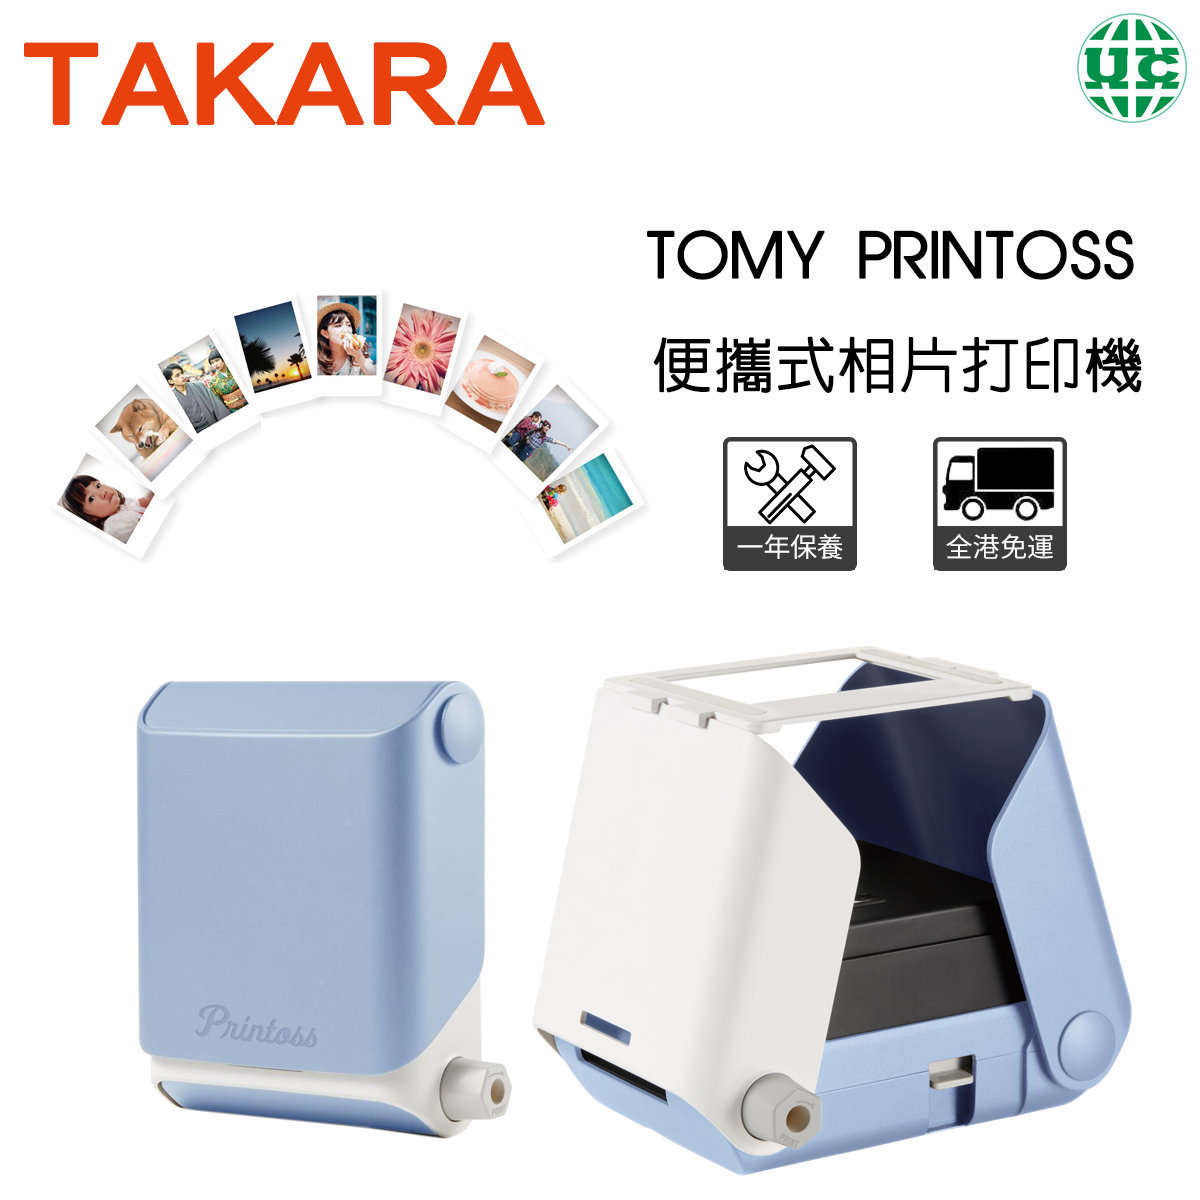 TOMY PRINTOSS Mobile Photo Printer blue (Parallel Imported)